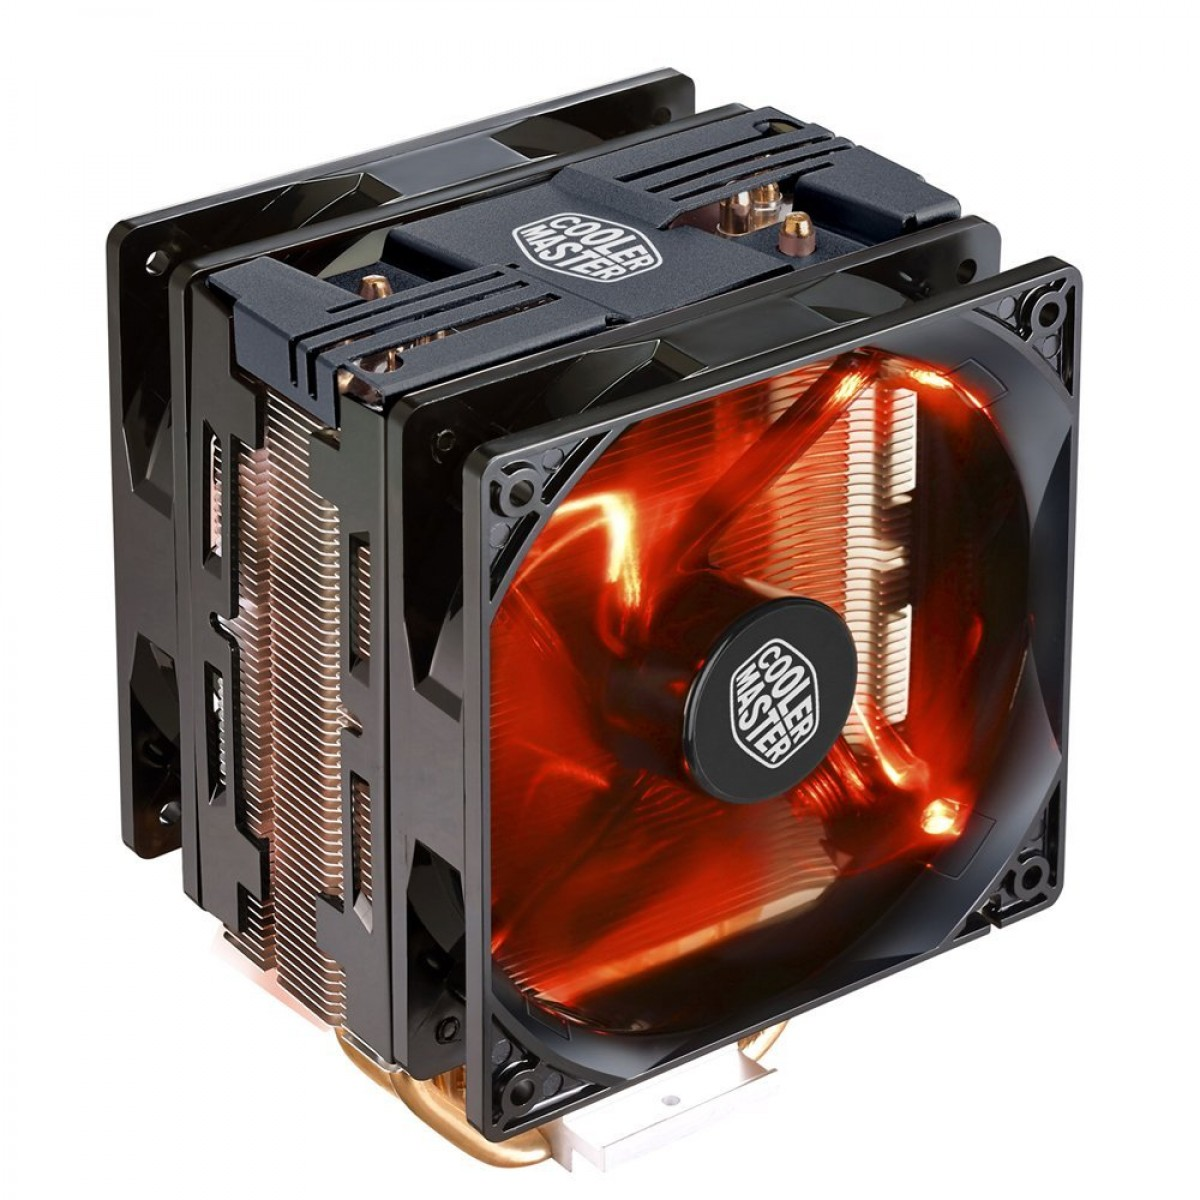 Cooler Master Hyper 212 LED Turbo Black CPU Air Cooler